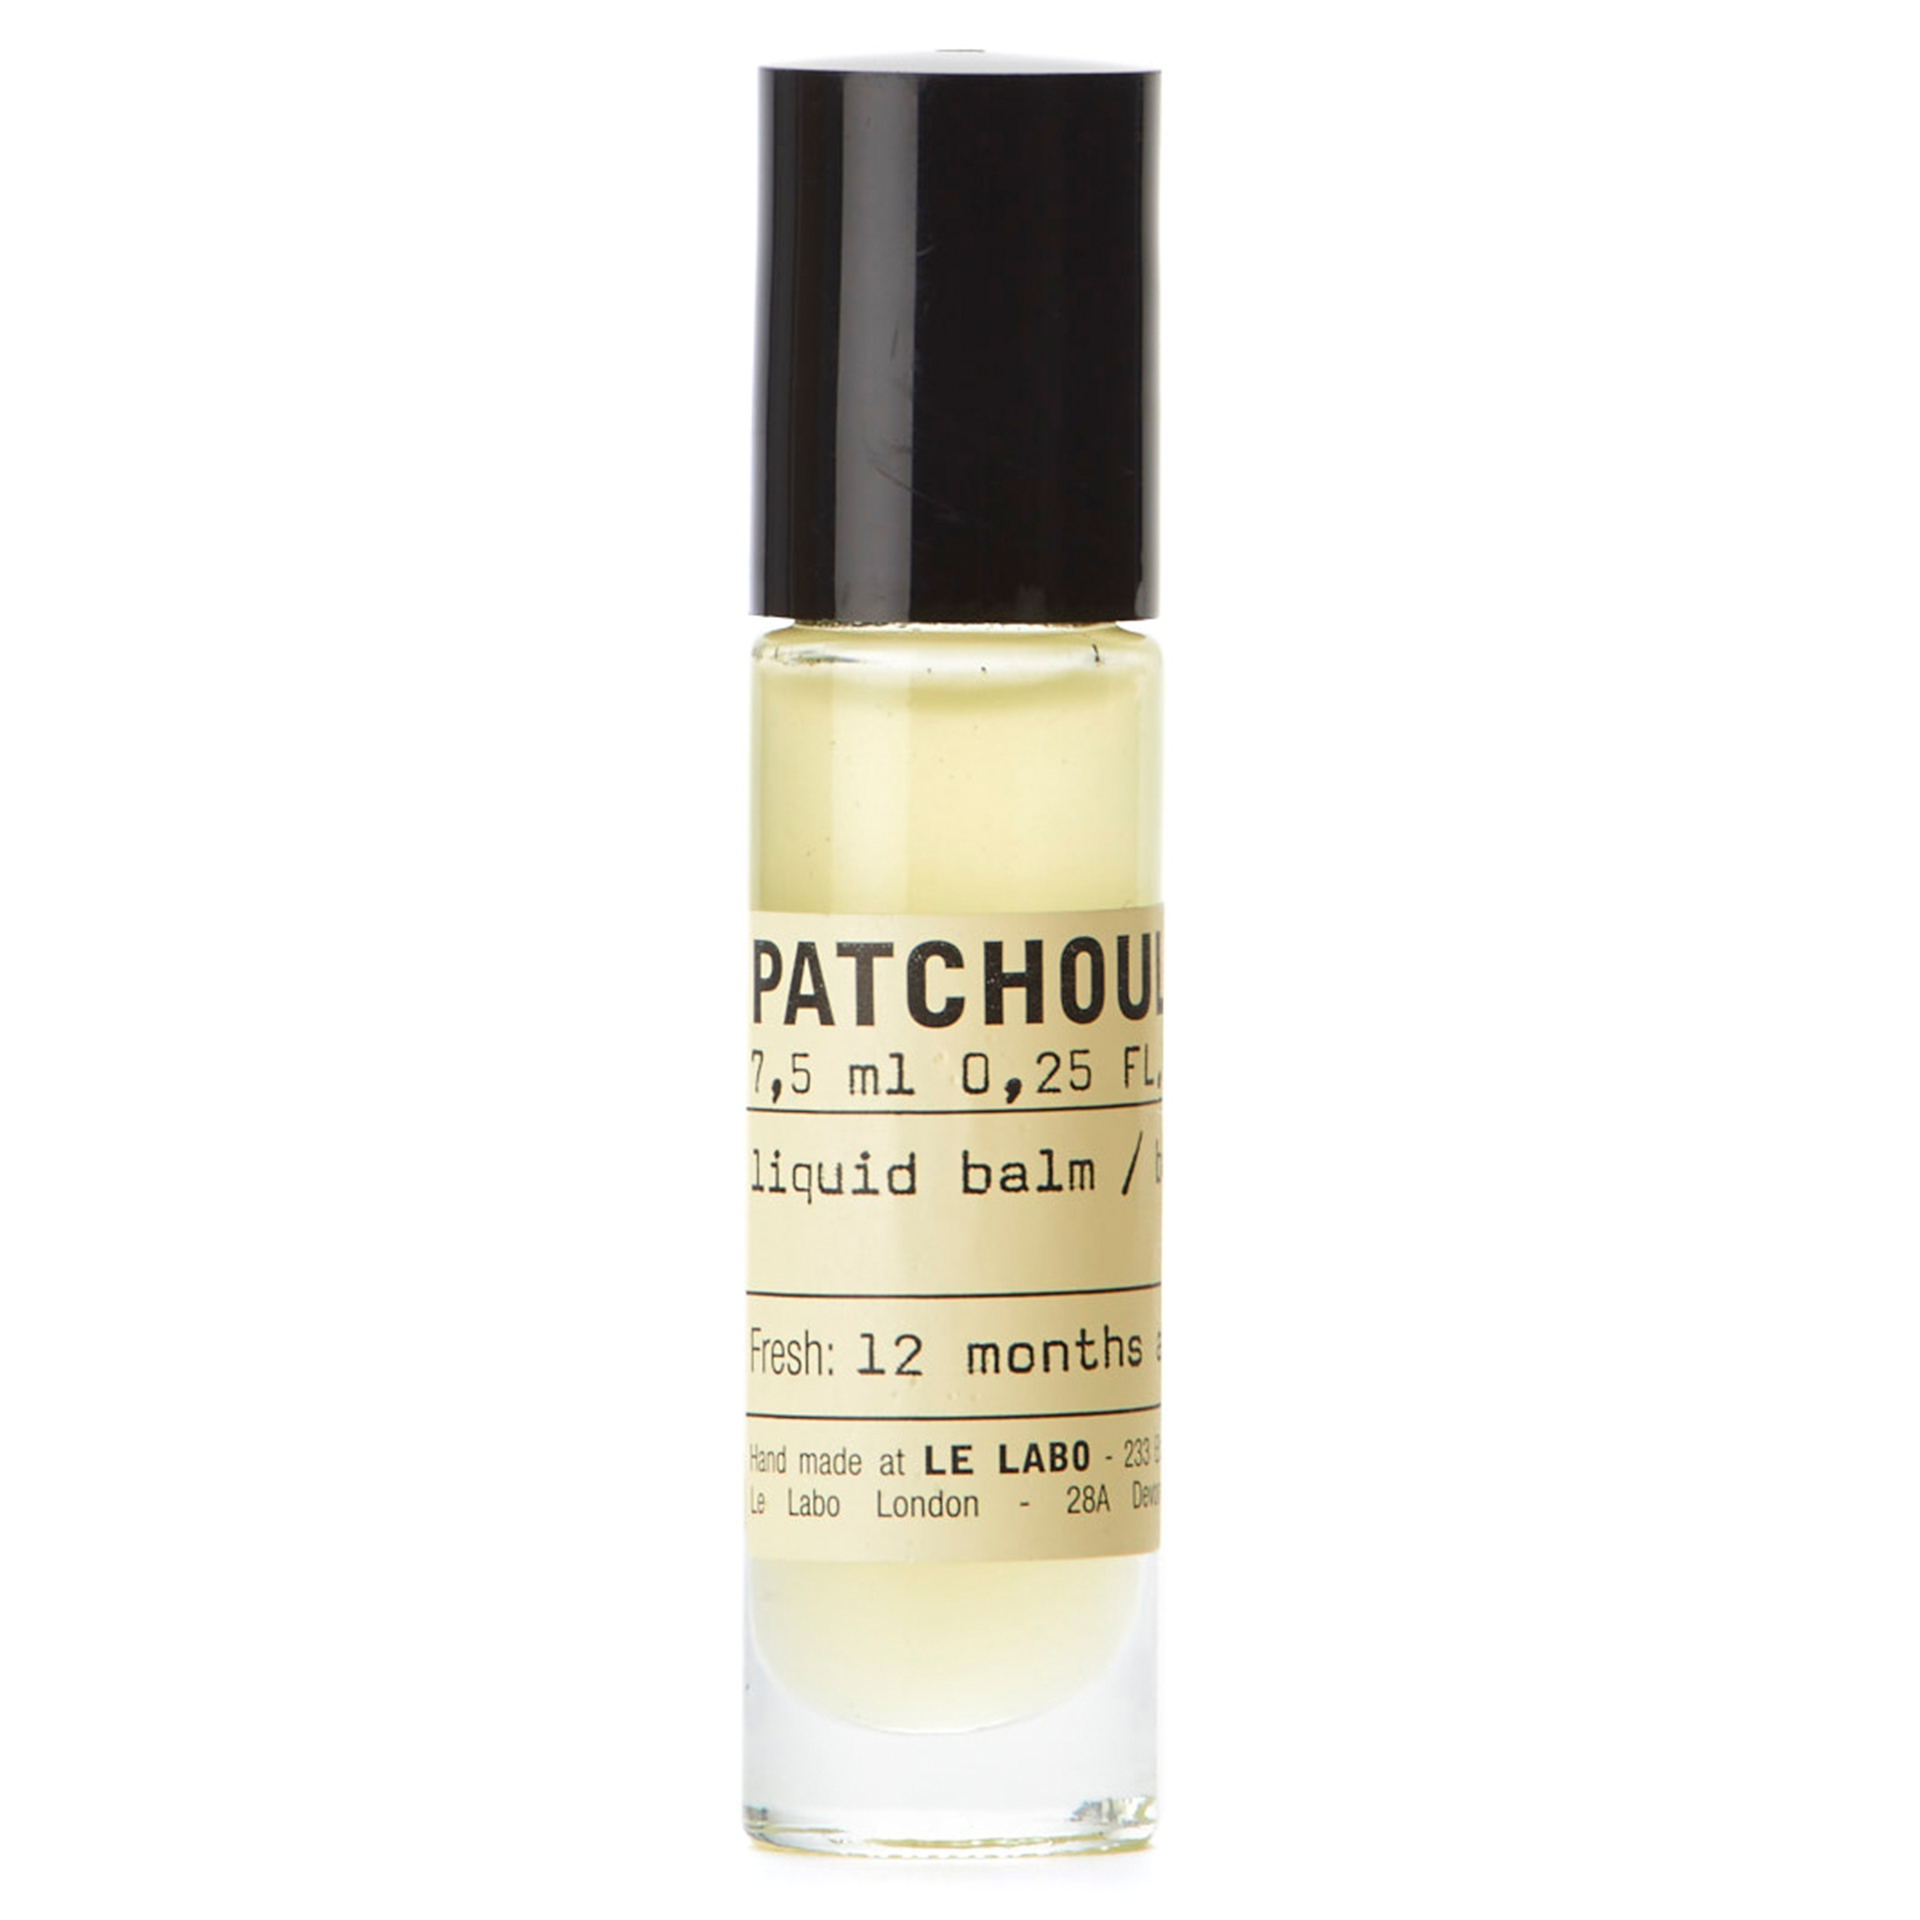 Patchouli 24 liquid balm 7.5ml